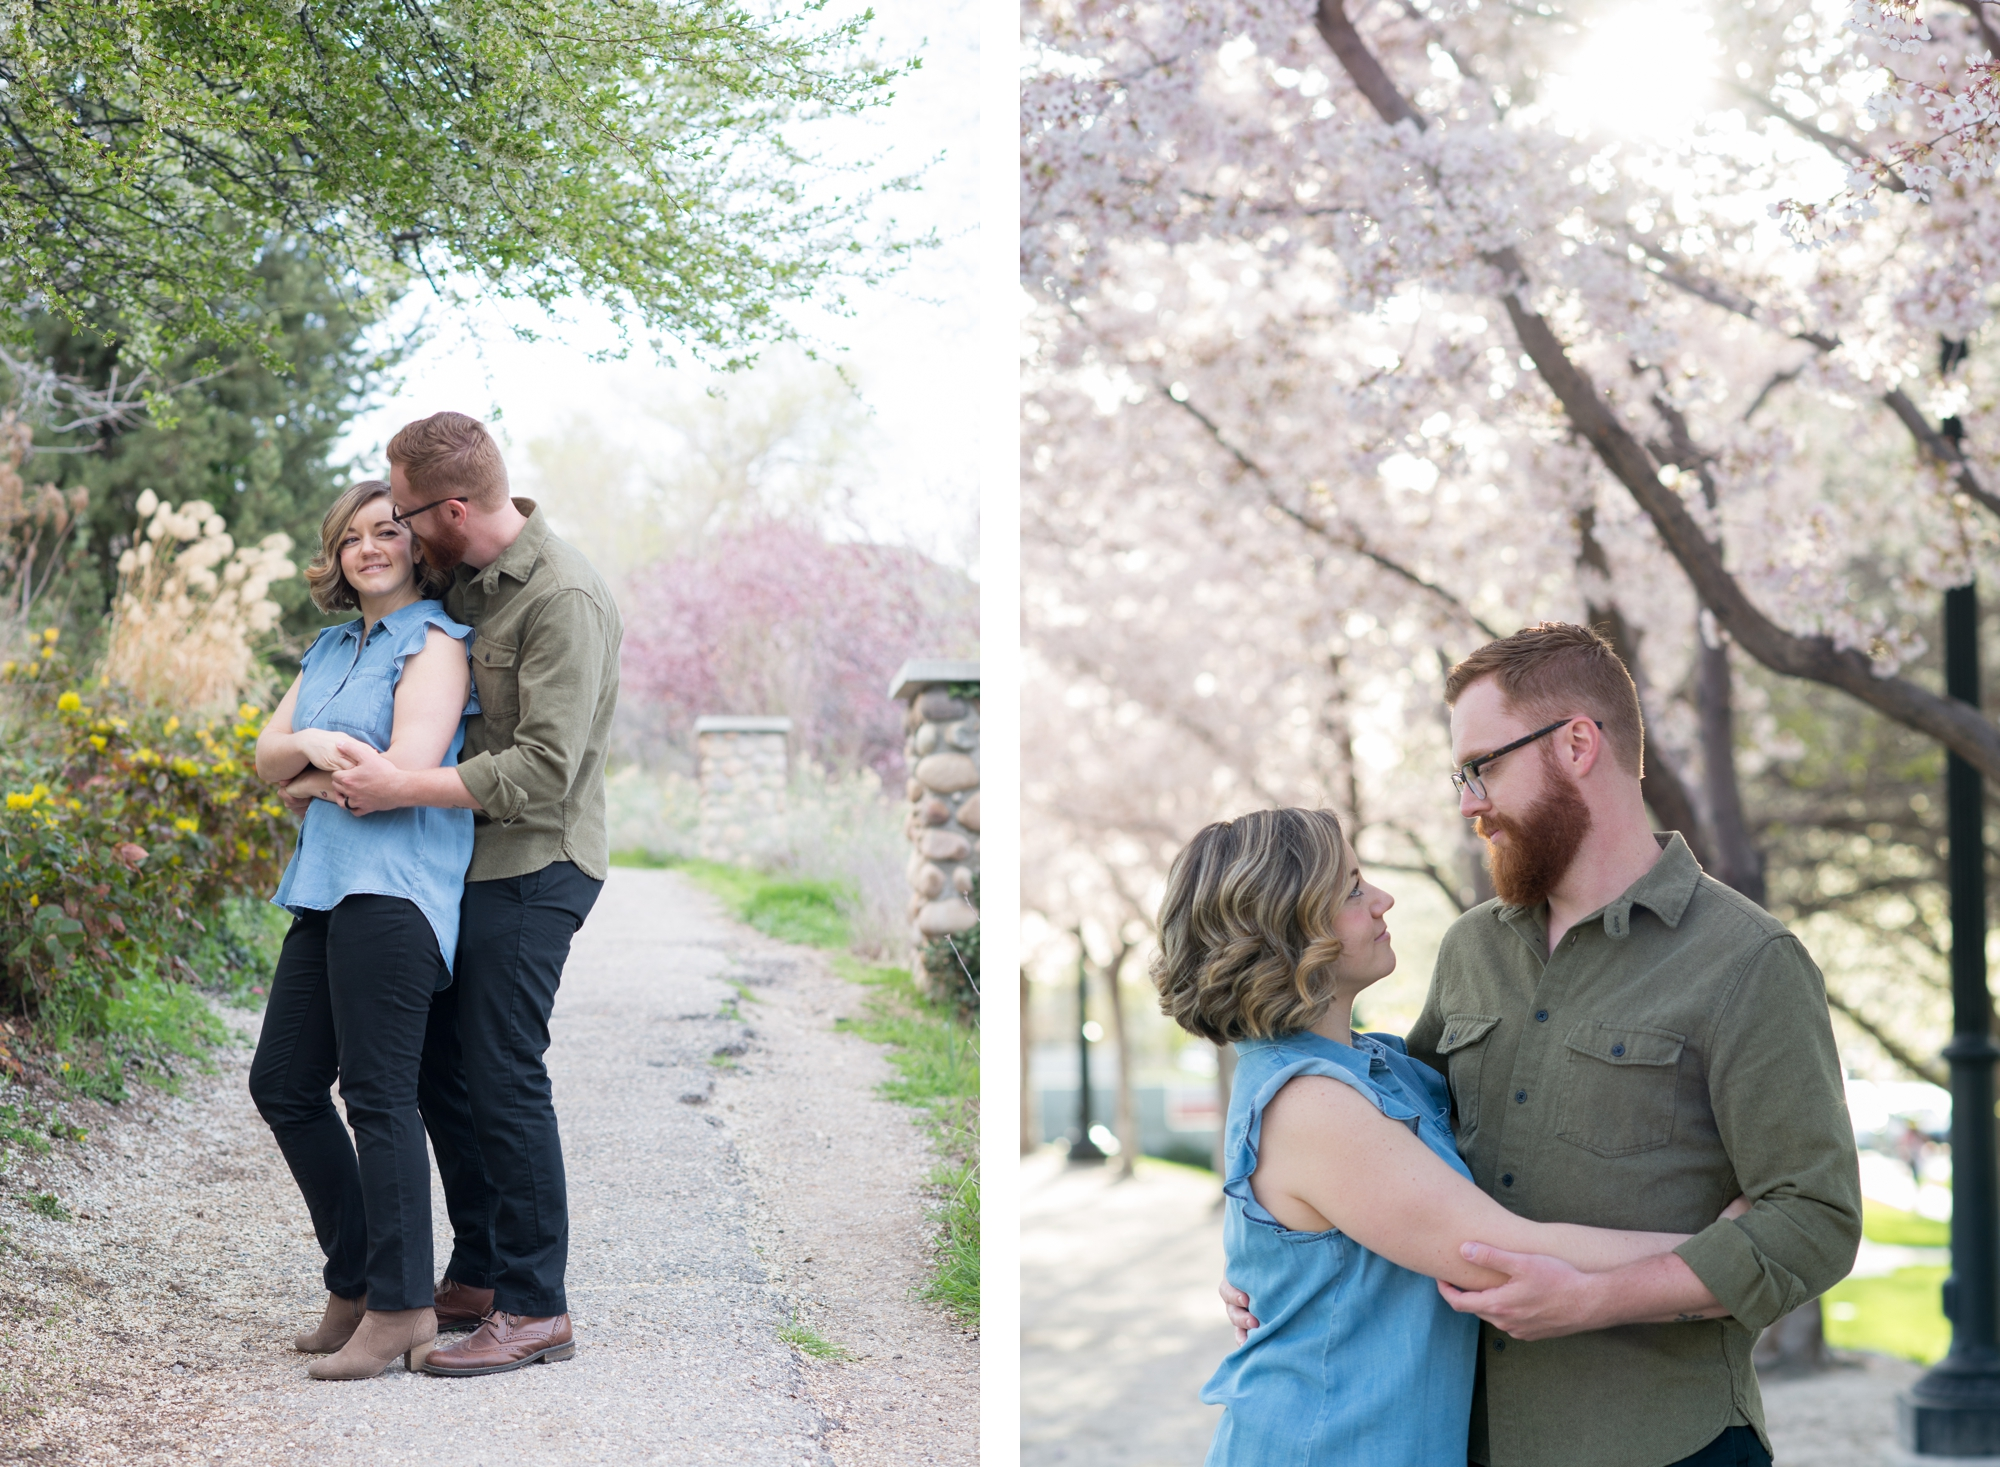 Rachel & Brad Engagement Photoshoot by The Aperture Company in Salt Lake City Utah